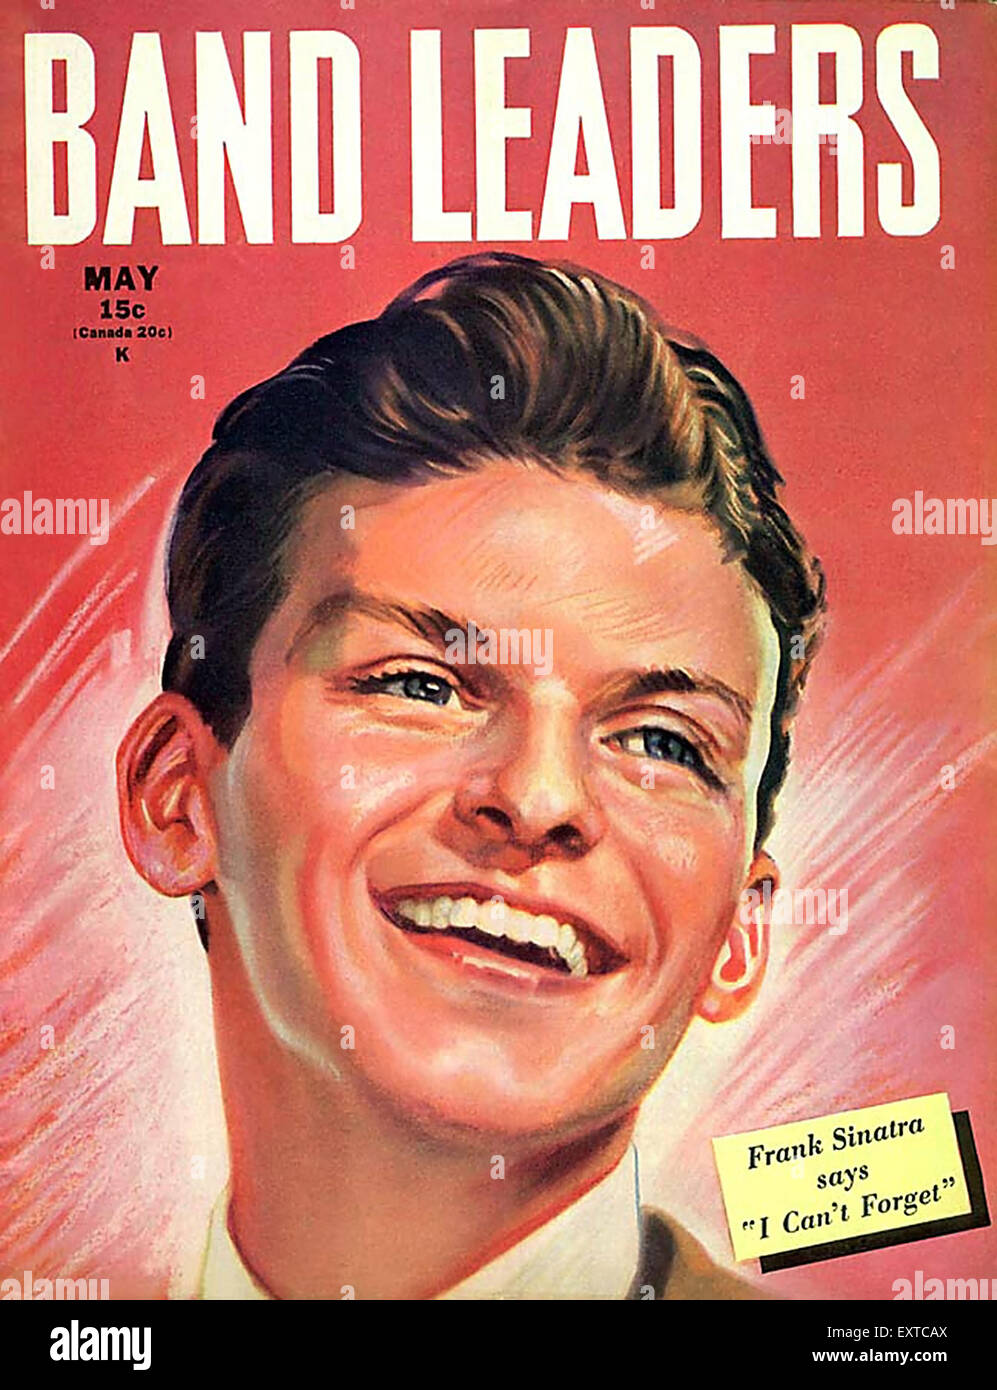 1940s USA Band Leaders Magazine Cover - Stock Image